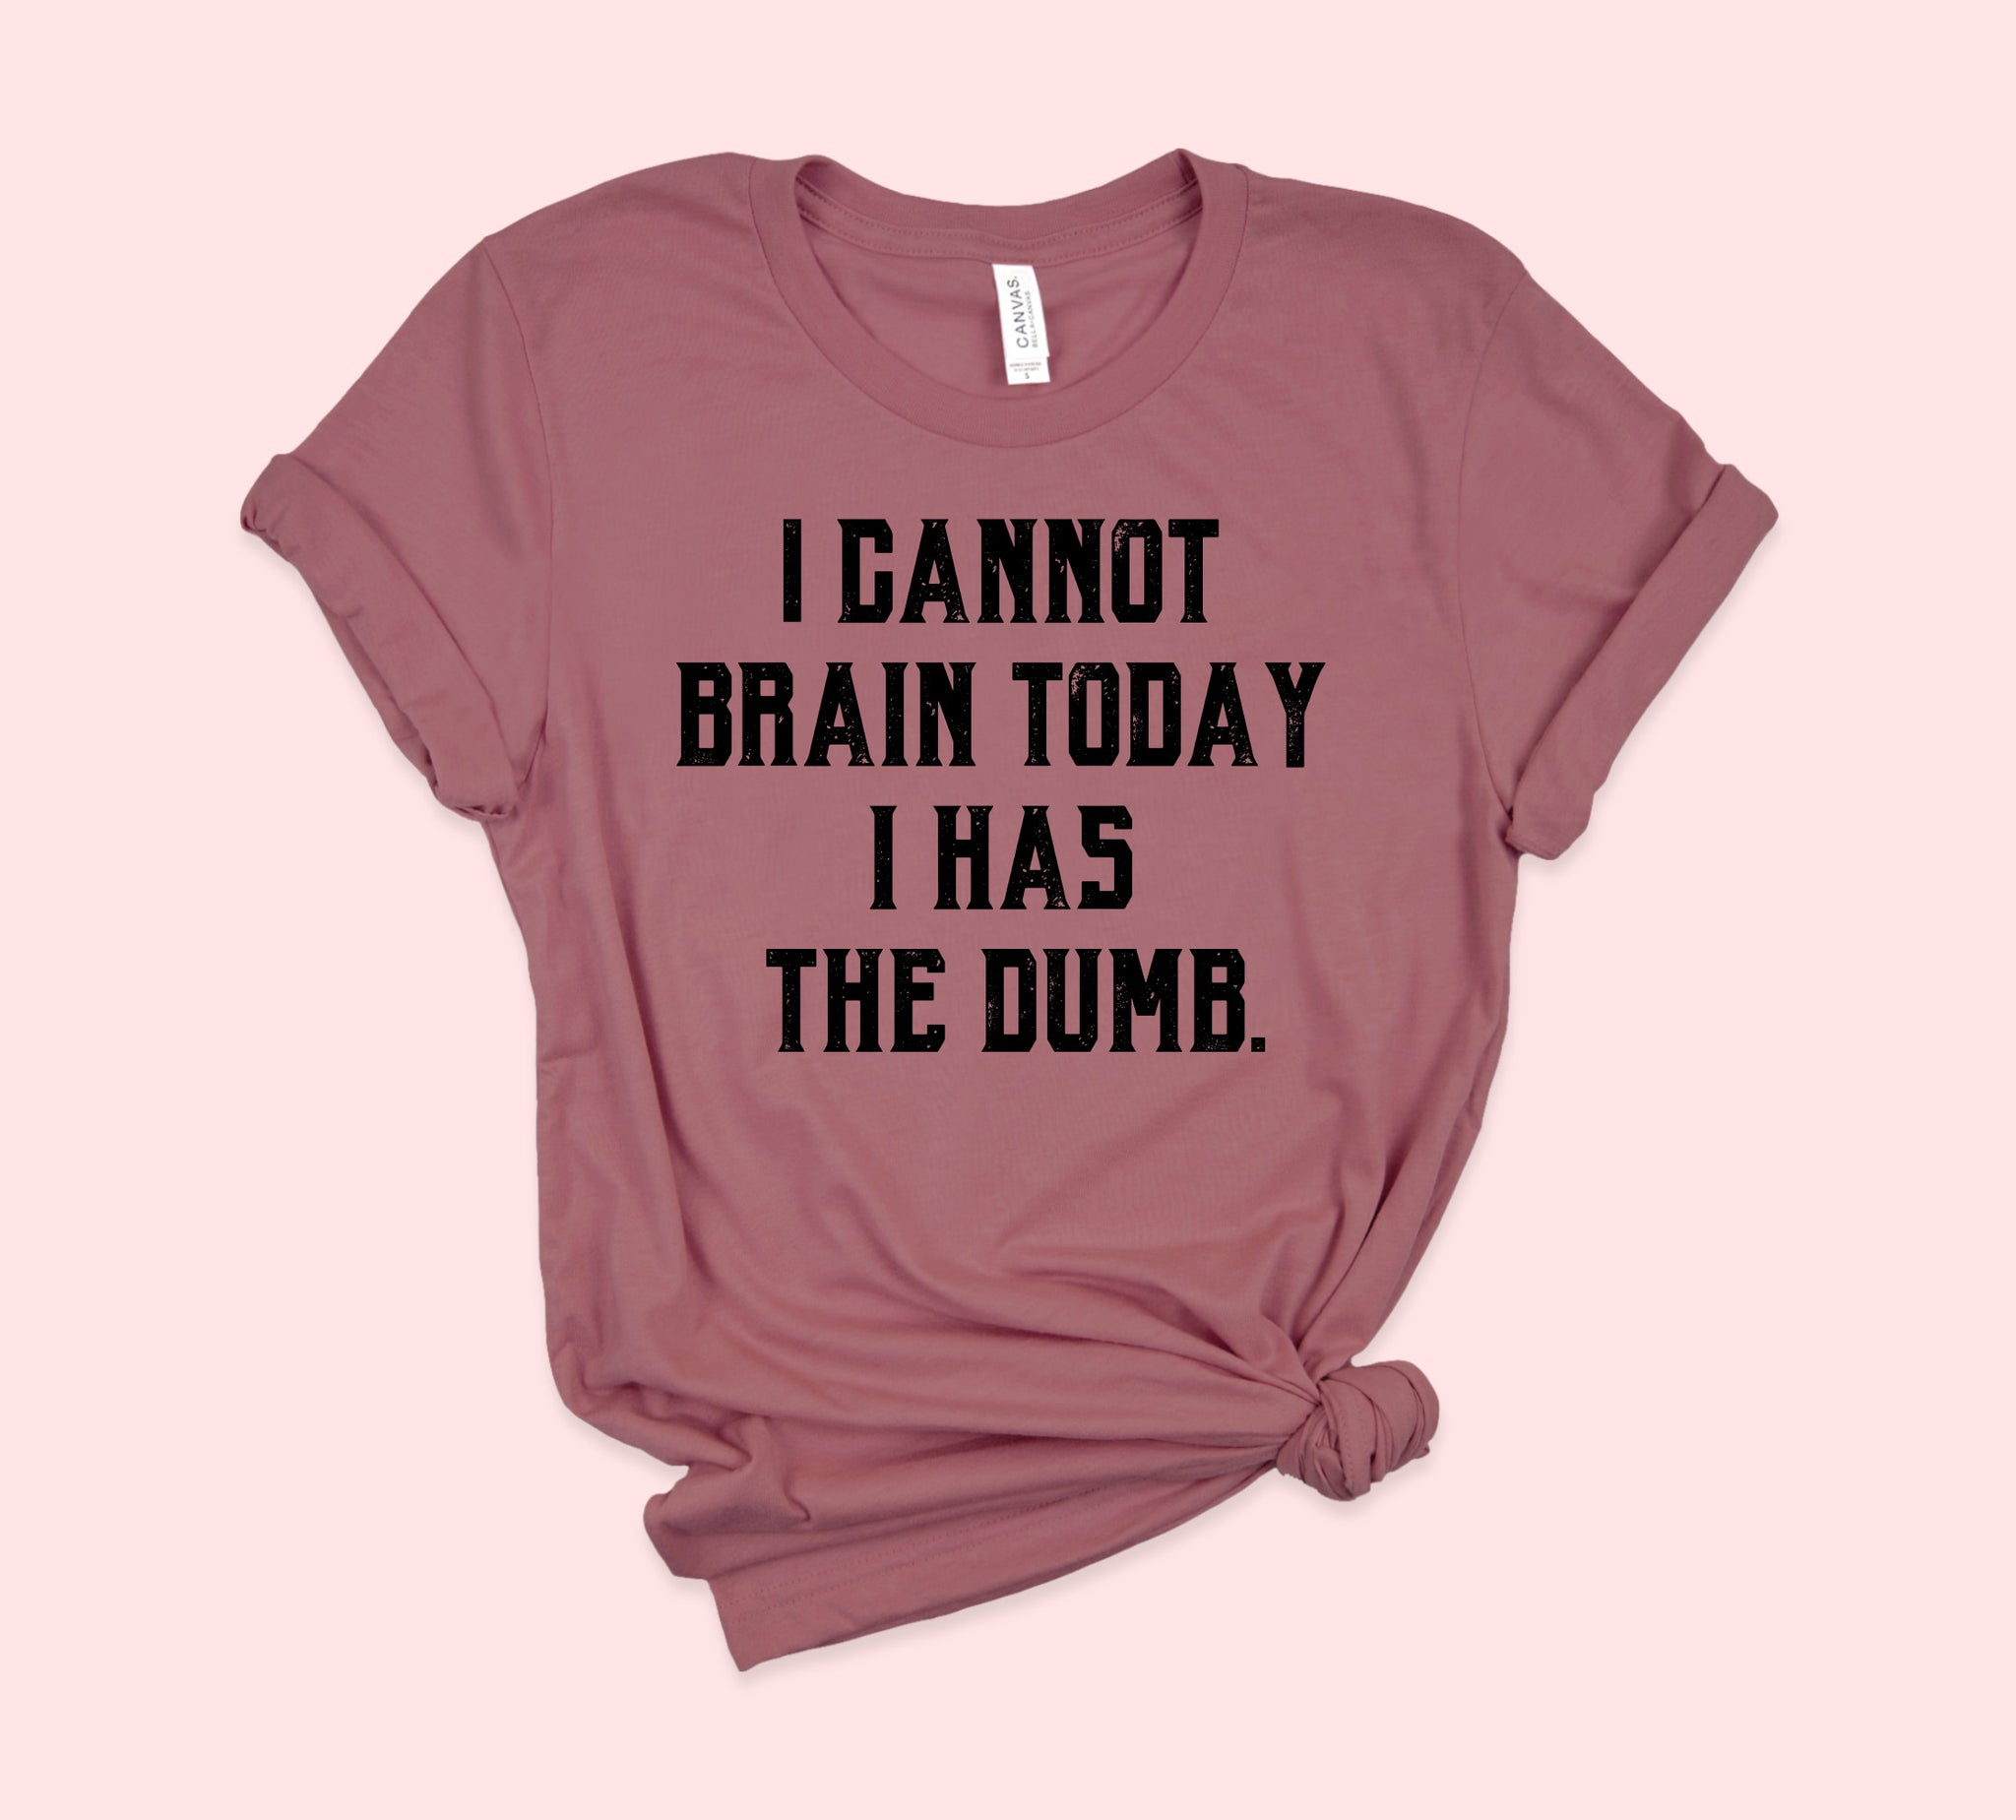 I Cannot Brain Today Shirt